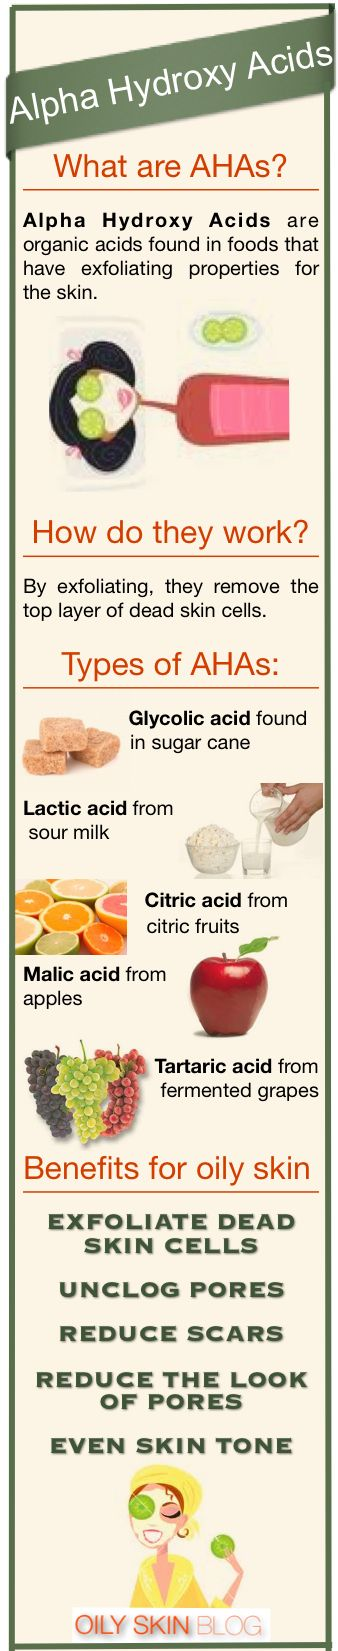 Alpha Hydroxy Acids #Arbonne uses these in our products! Contact me for more info: kara@eda-az.com  Contultant ID # 14675220